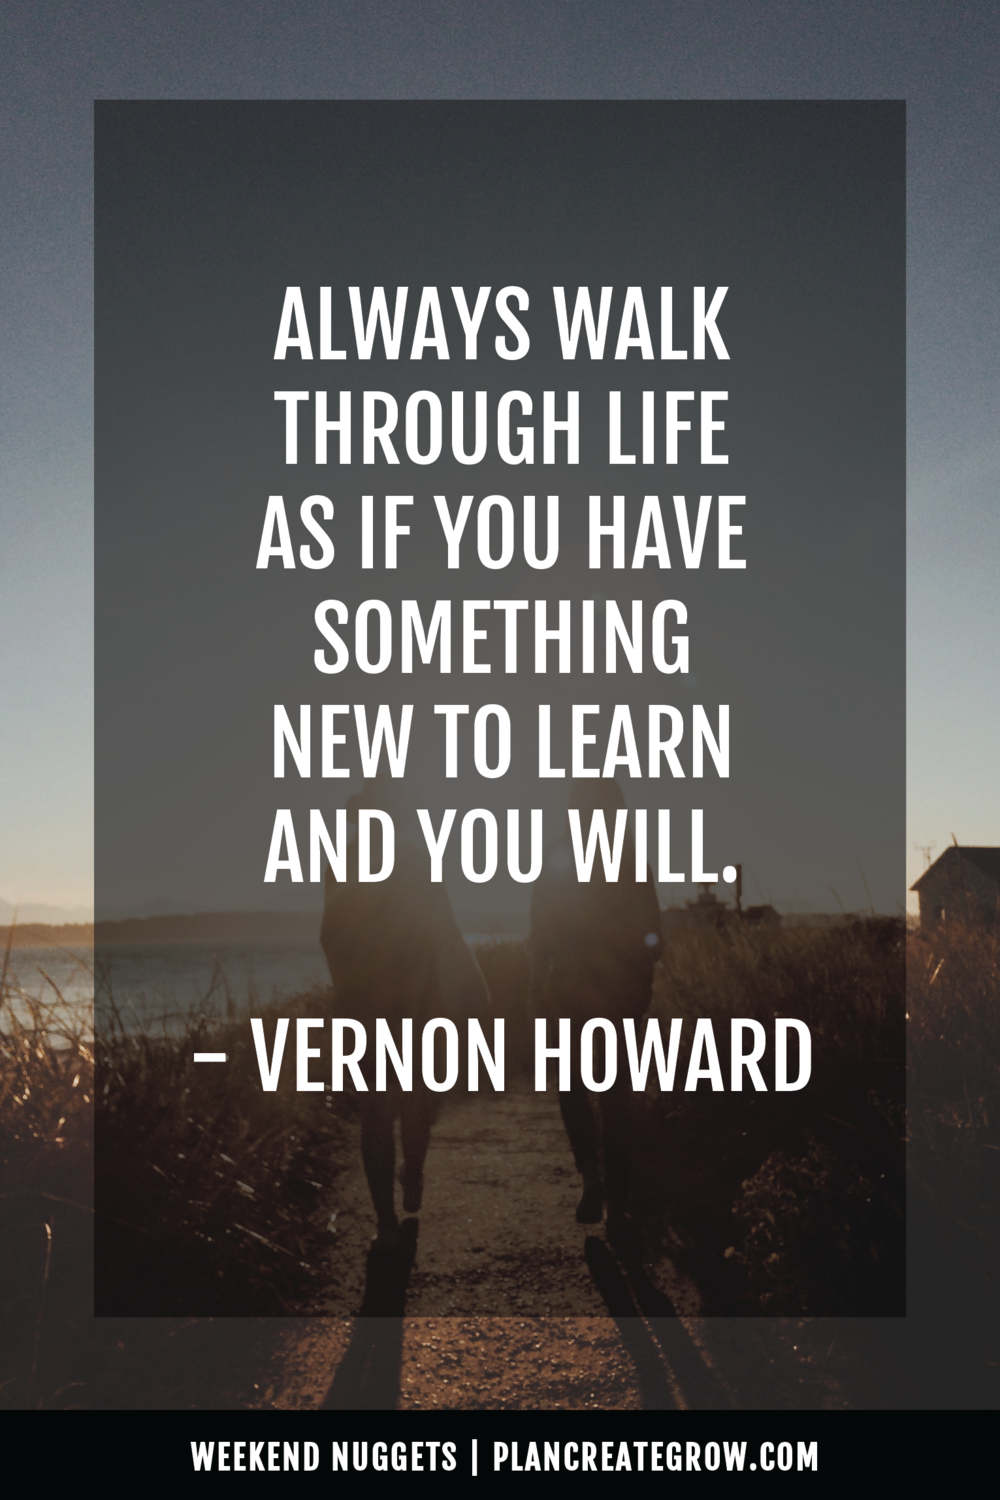 """Always walk through life as if you have something new to learn."" - Vernon Howard  This image forms part of a series called Weekend Nuggets - a collection of quotes and ideas curated to delight and inspire - shared each weekend. For more, visit plancreategrow.com/weekend-nuggets."